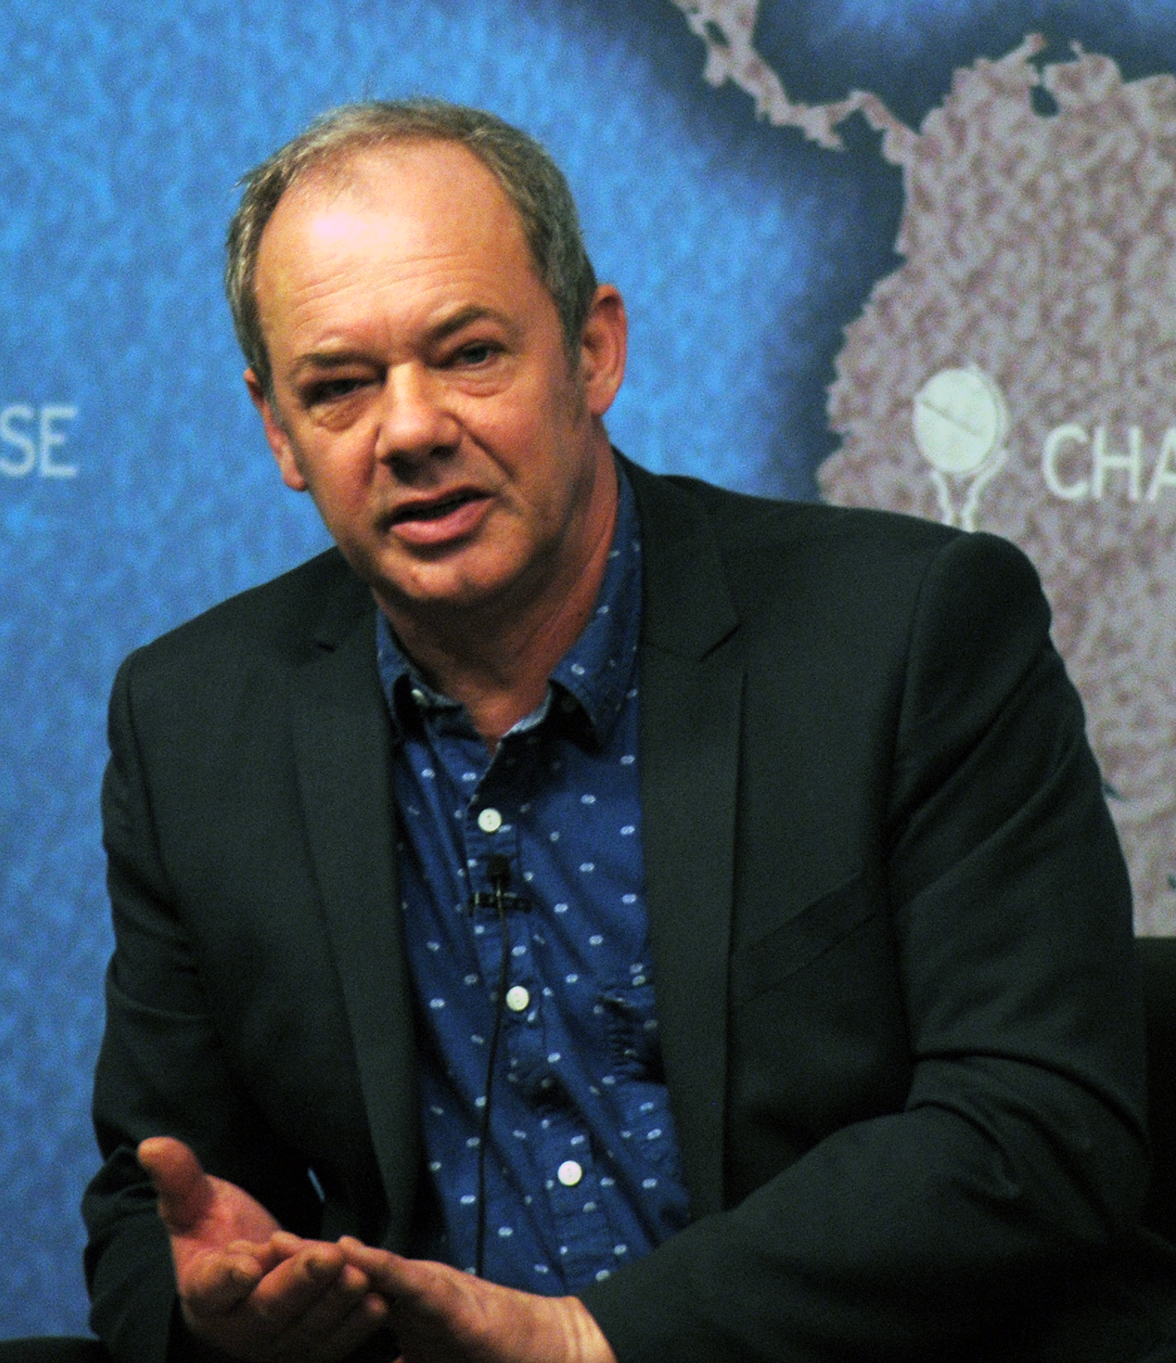 Macrae at [[Chatham House]] in 2013